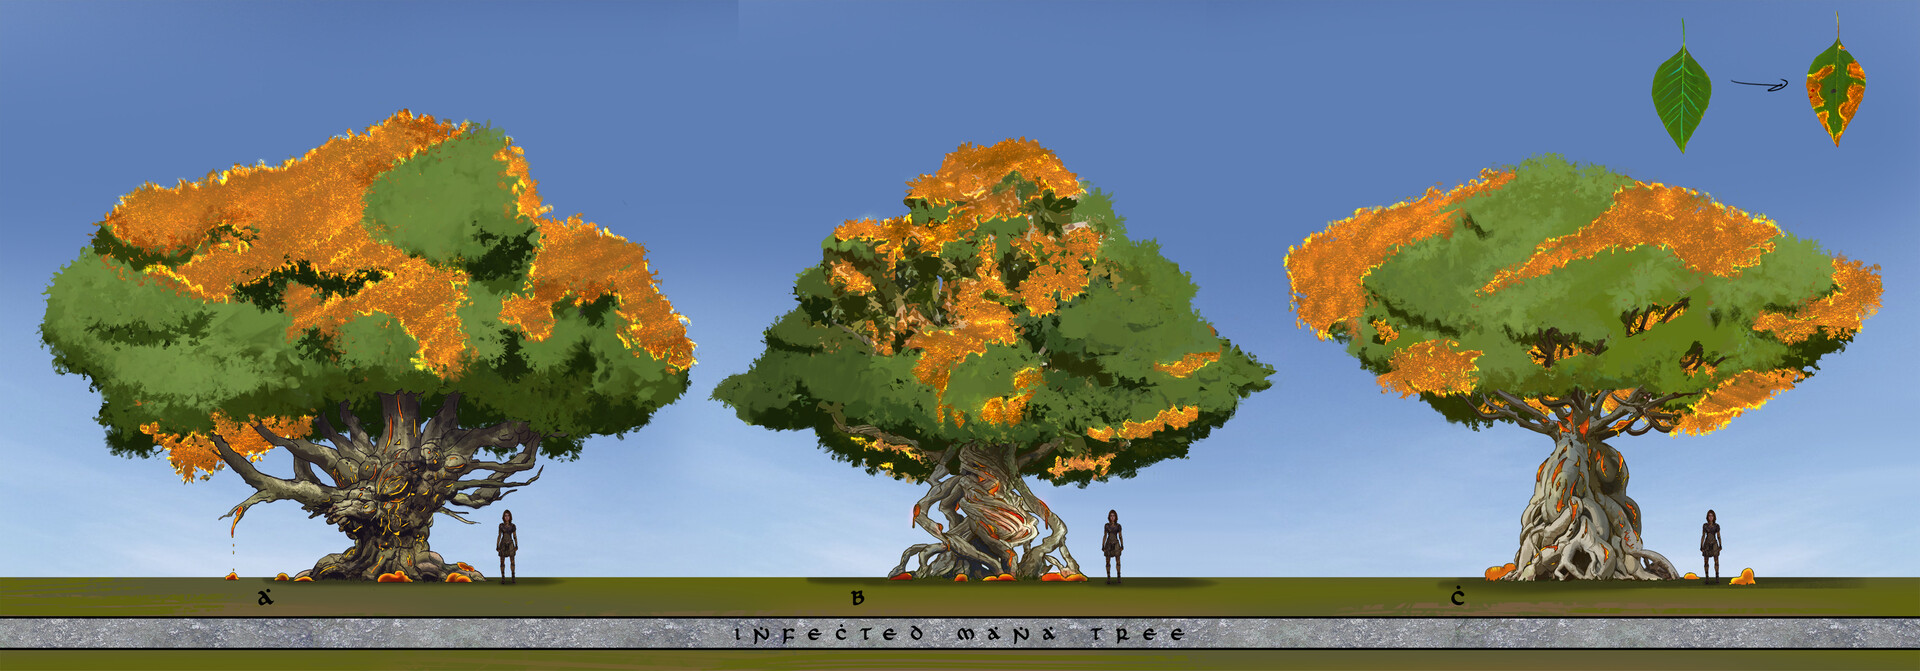 Variations on the hero tree for the level, the tree is the central energy source for the mana forest.